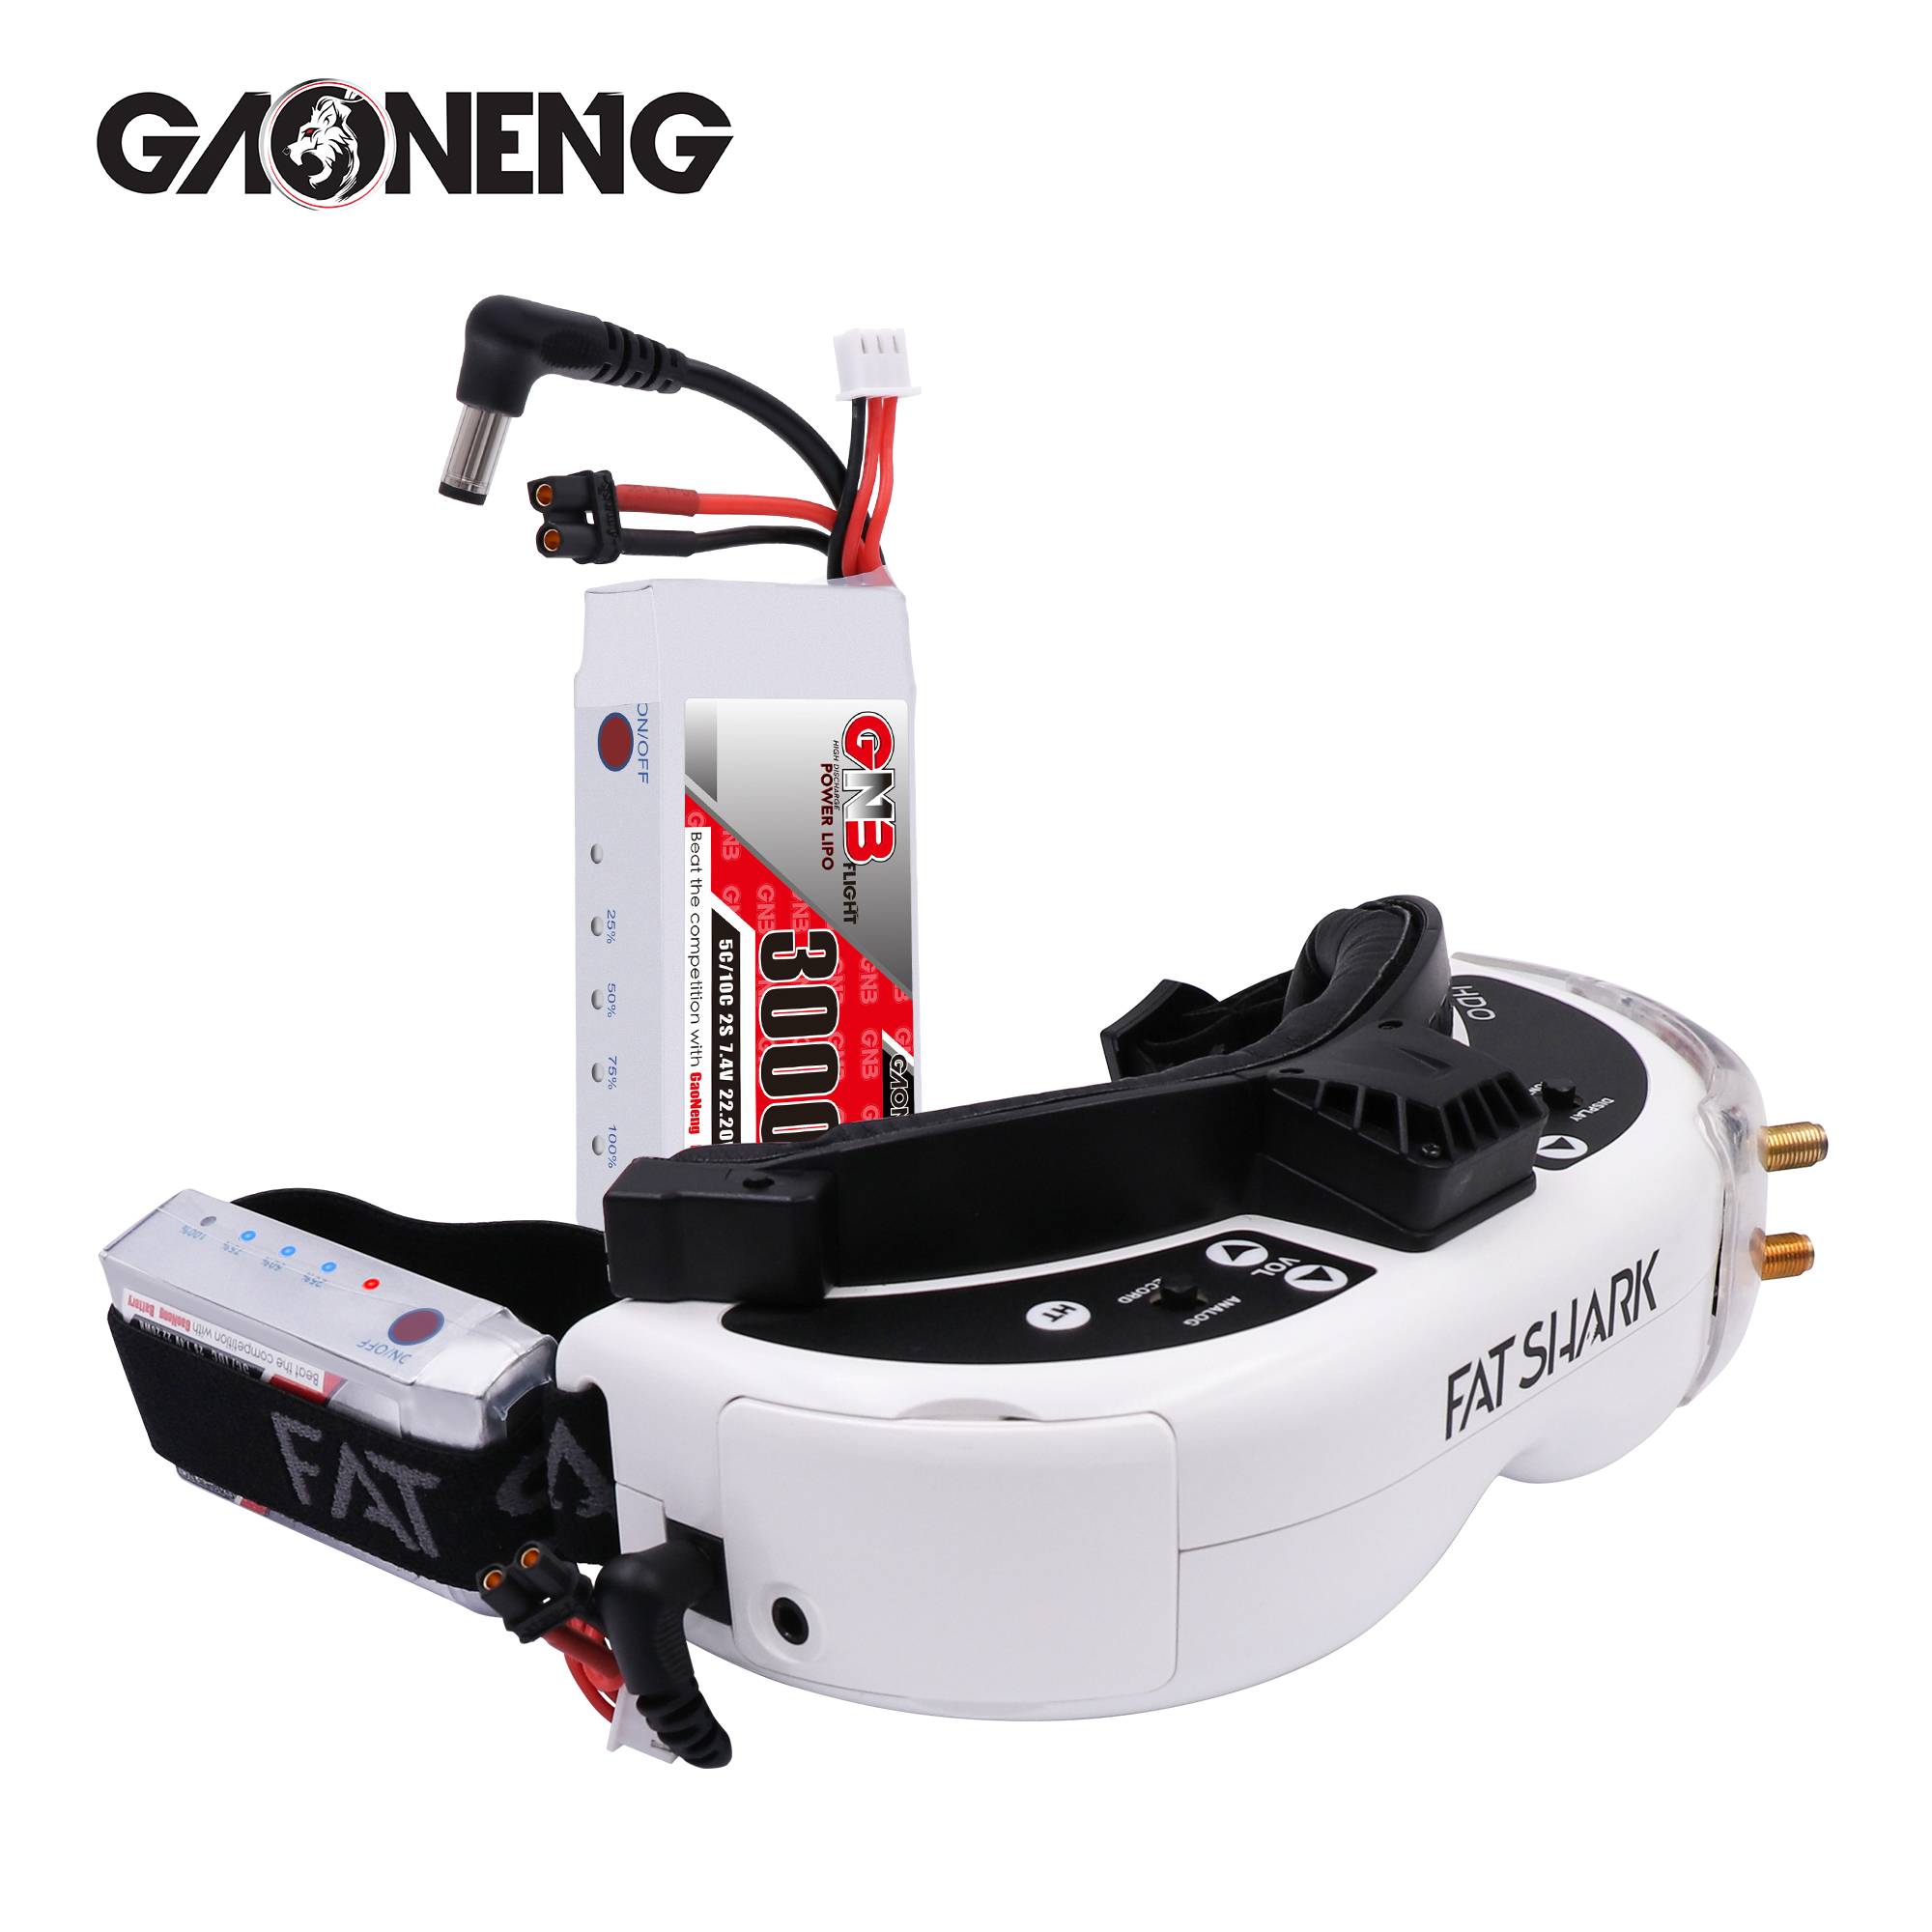 Gaoneng GNB <font><b>3000MAH</b></font> <font><b>2S</b></font> 5C <font><b>Lipo</b></font> Battery Power Indicator for Fatshark glasses Dominator Skyzone Aomway FPV Goggles RC Drone image